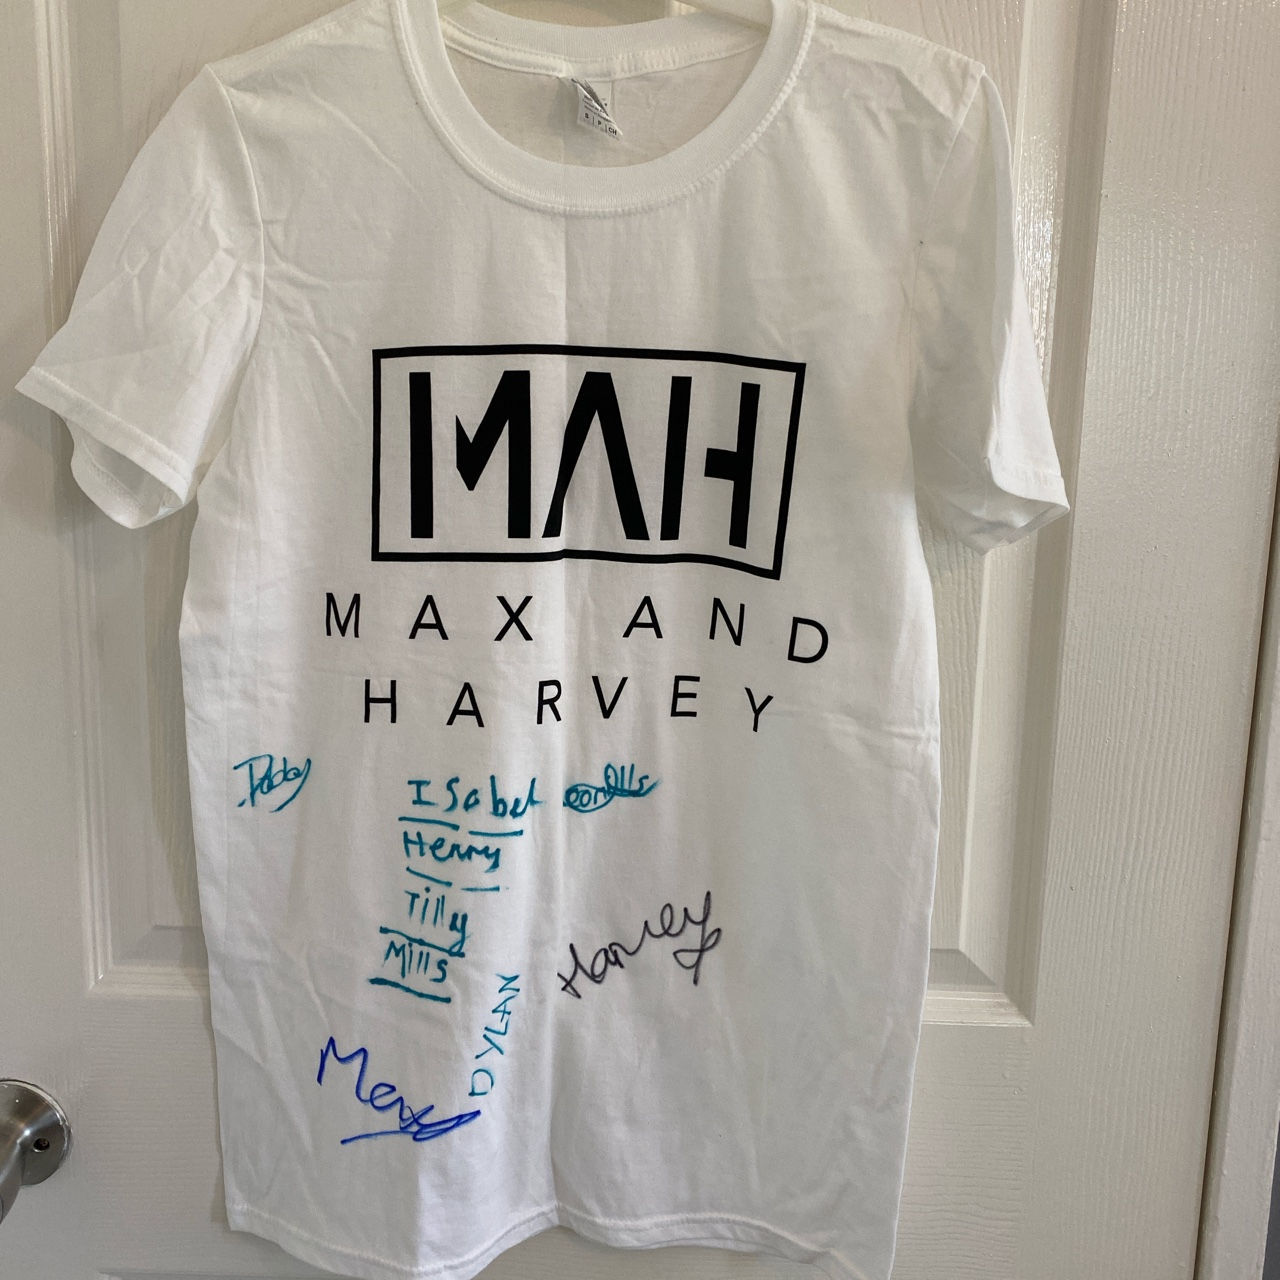 Official Max and Harvey Merch from their concert....